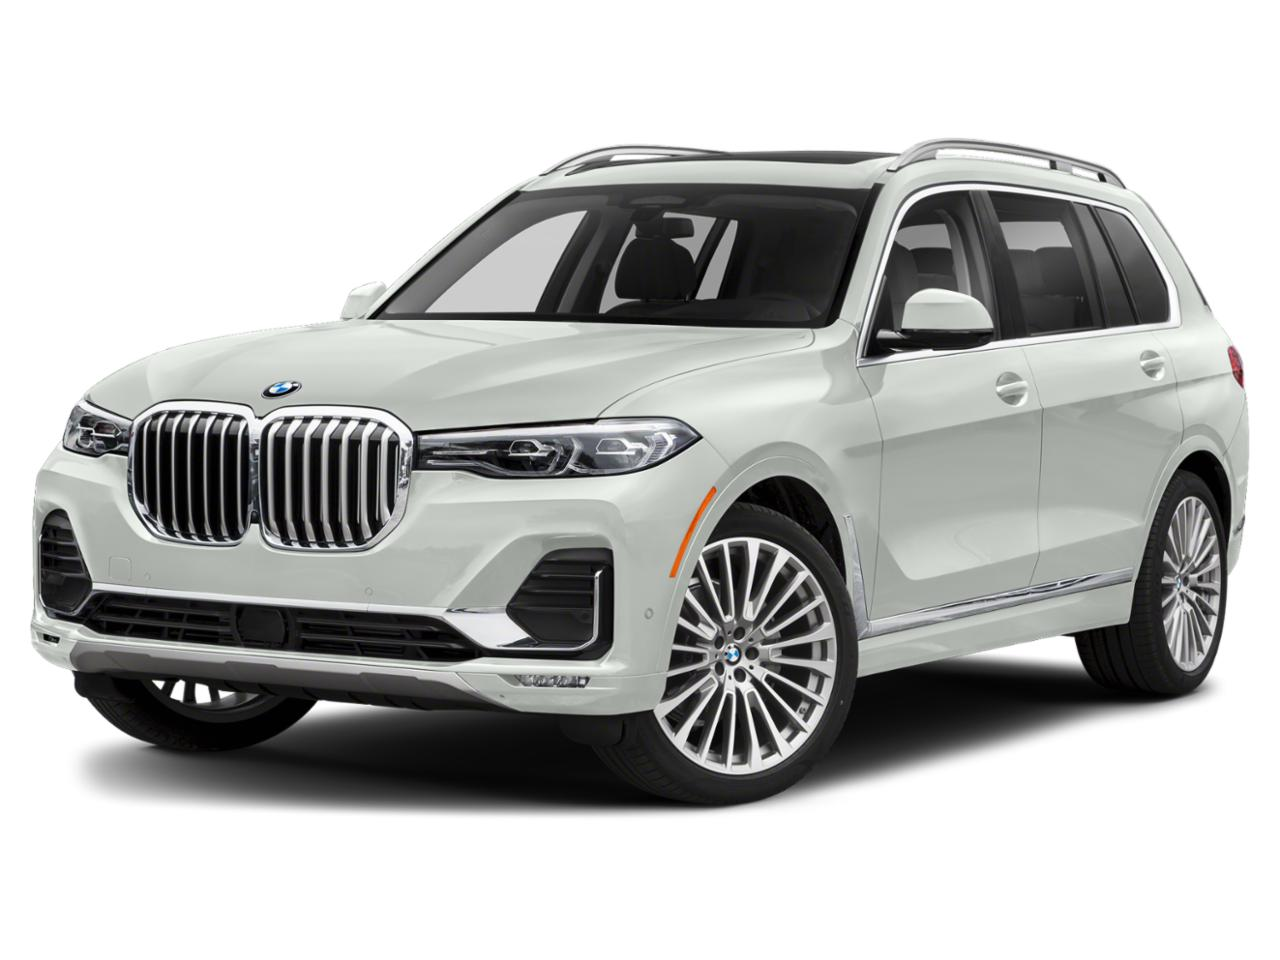 2021 BMW X7 xDrive40i Vehicle Photo in Grapevine, TX 76051